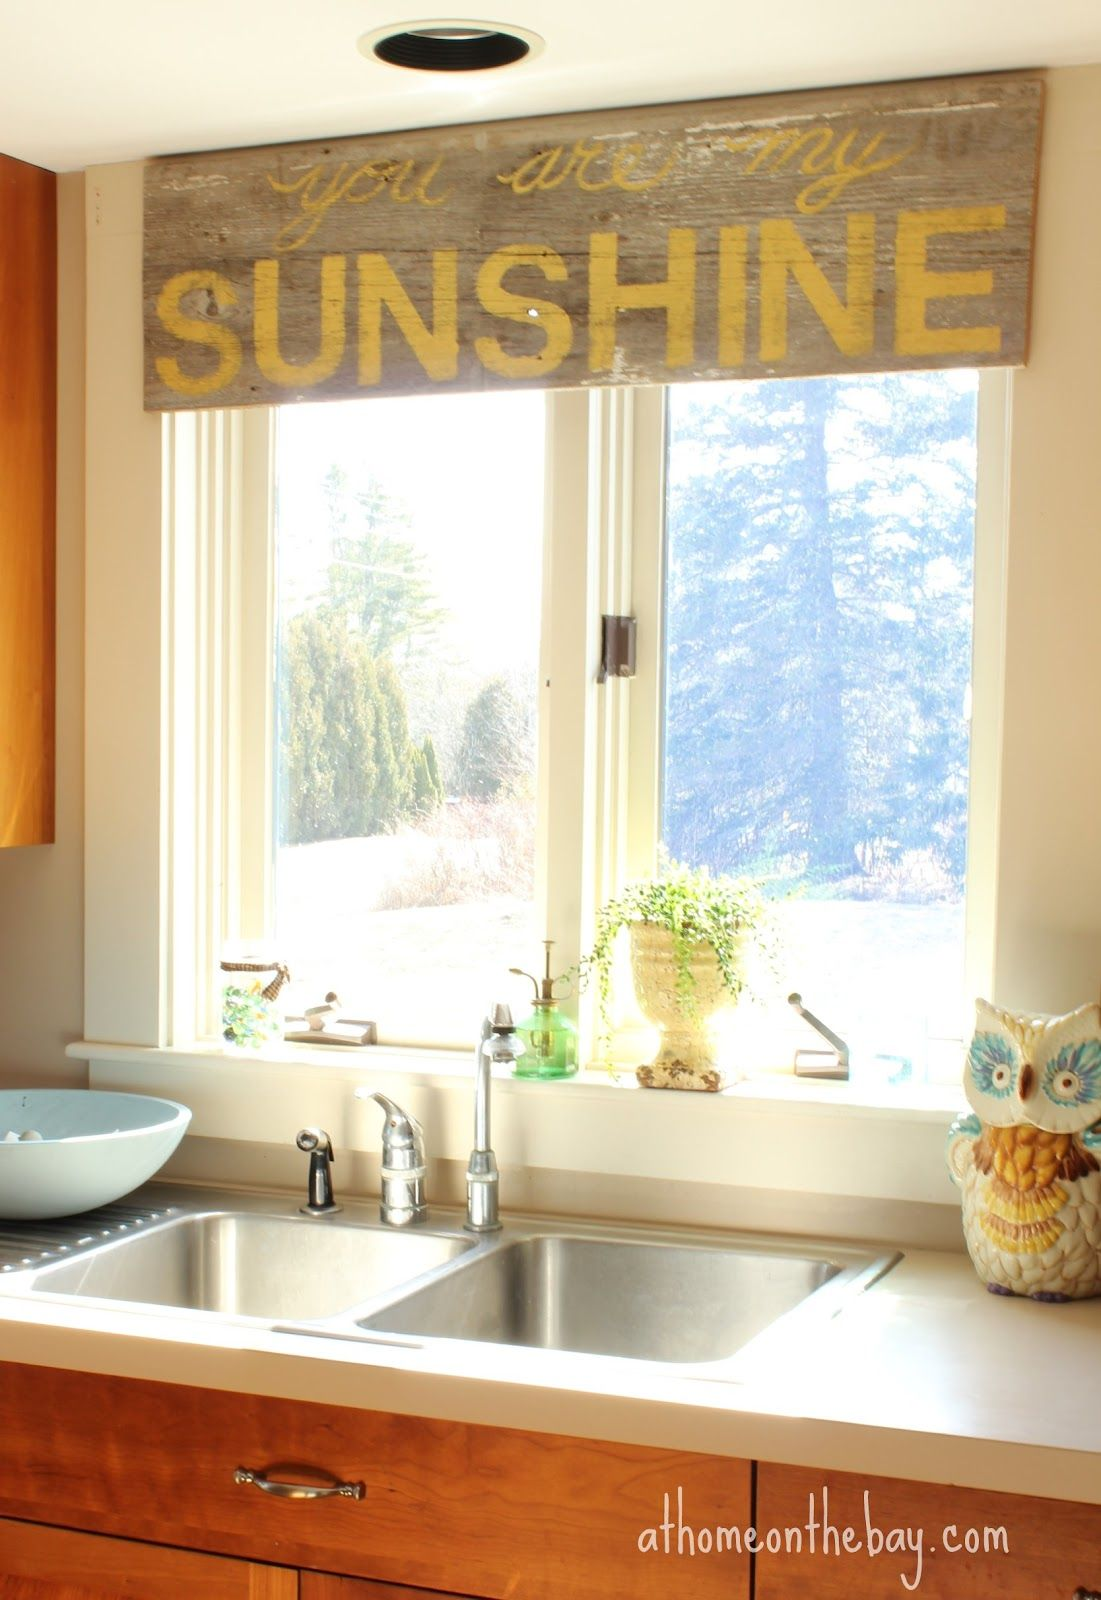 kitchens - Kitchen Window Treatment Ideas